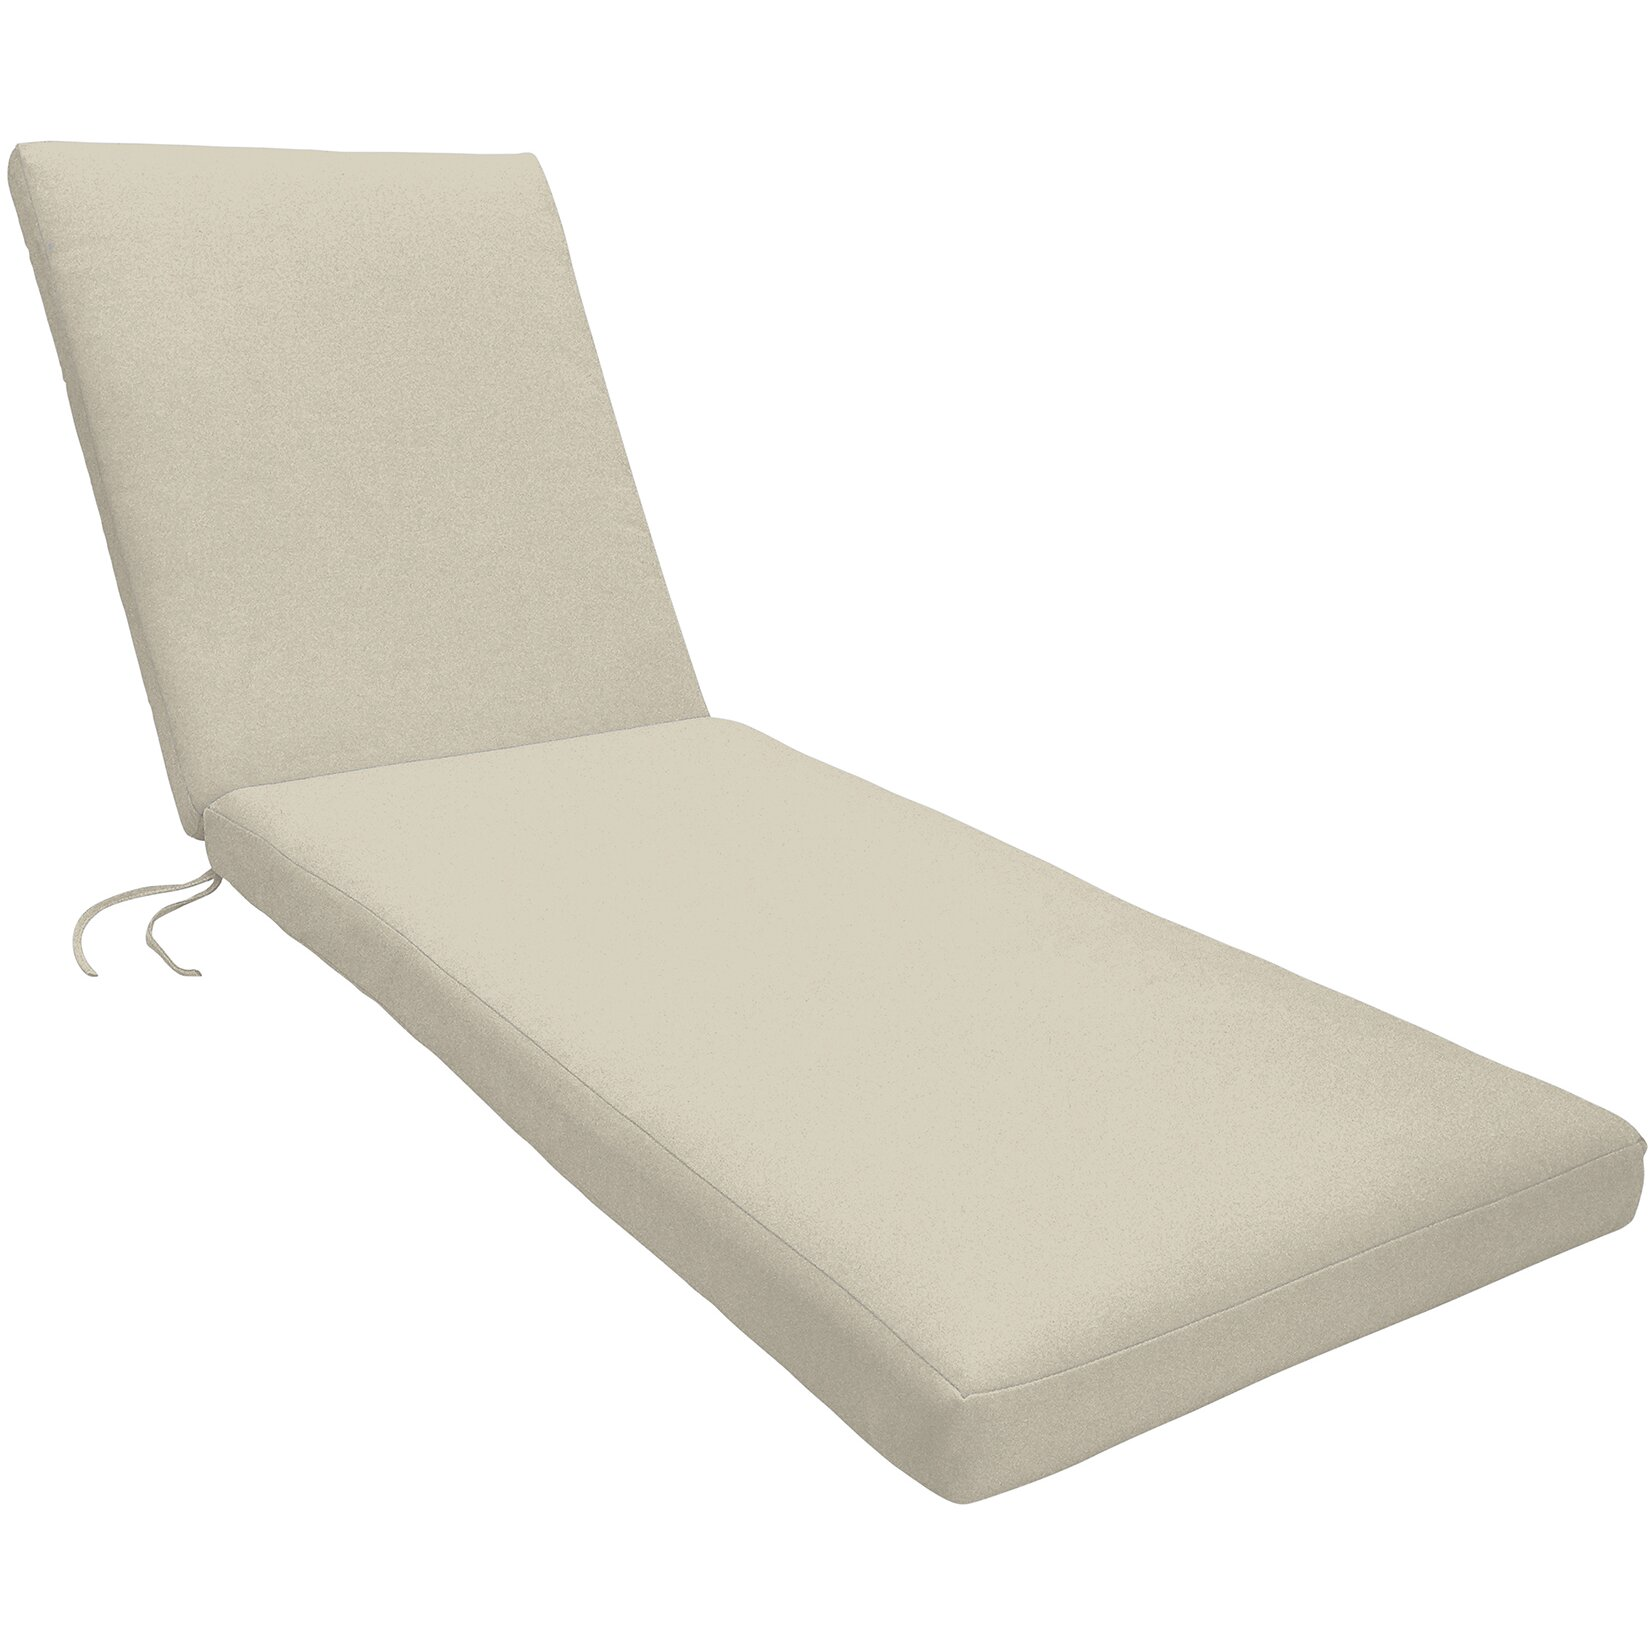 Wayfair custom outdoor cushions knife edge outdoor chaise for Chaise lounge cushion outdoor